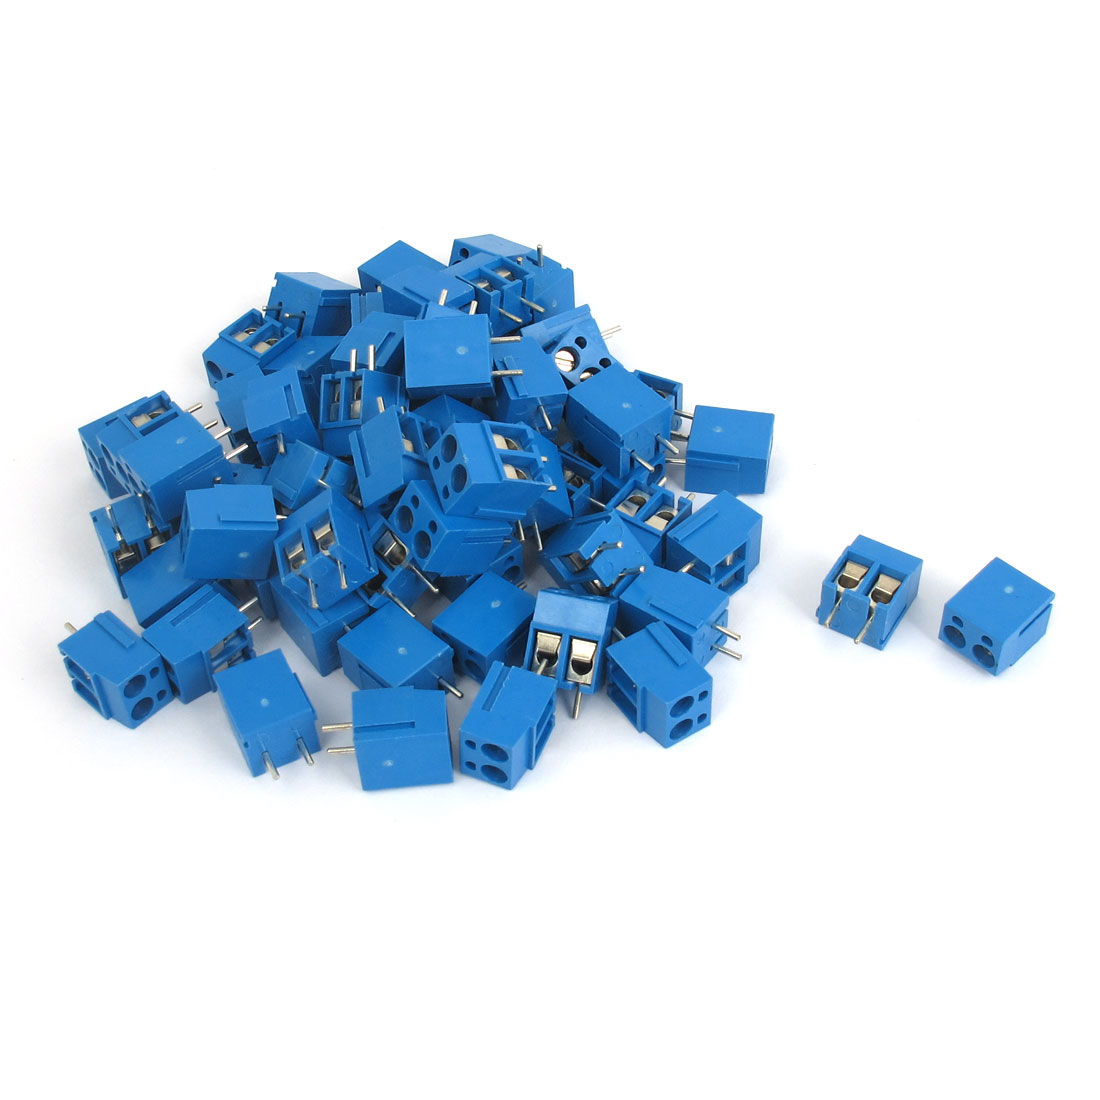 65pcs AC 300V 16A 2P 5mm Pitch Pluggable PCB Mounted Terminal Block for AWG14-22 Cable